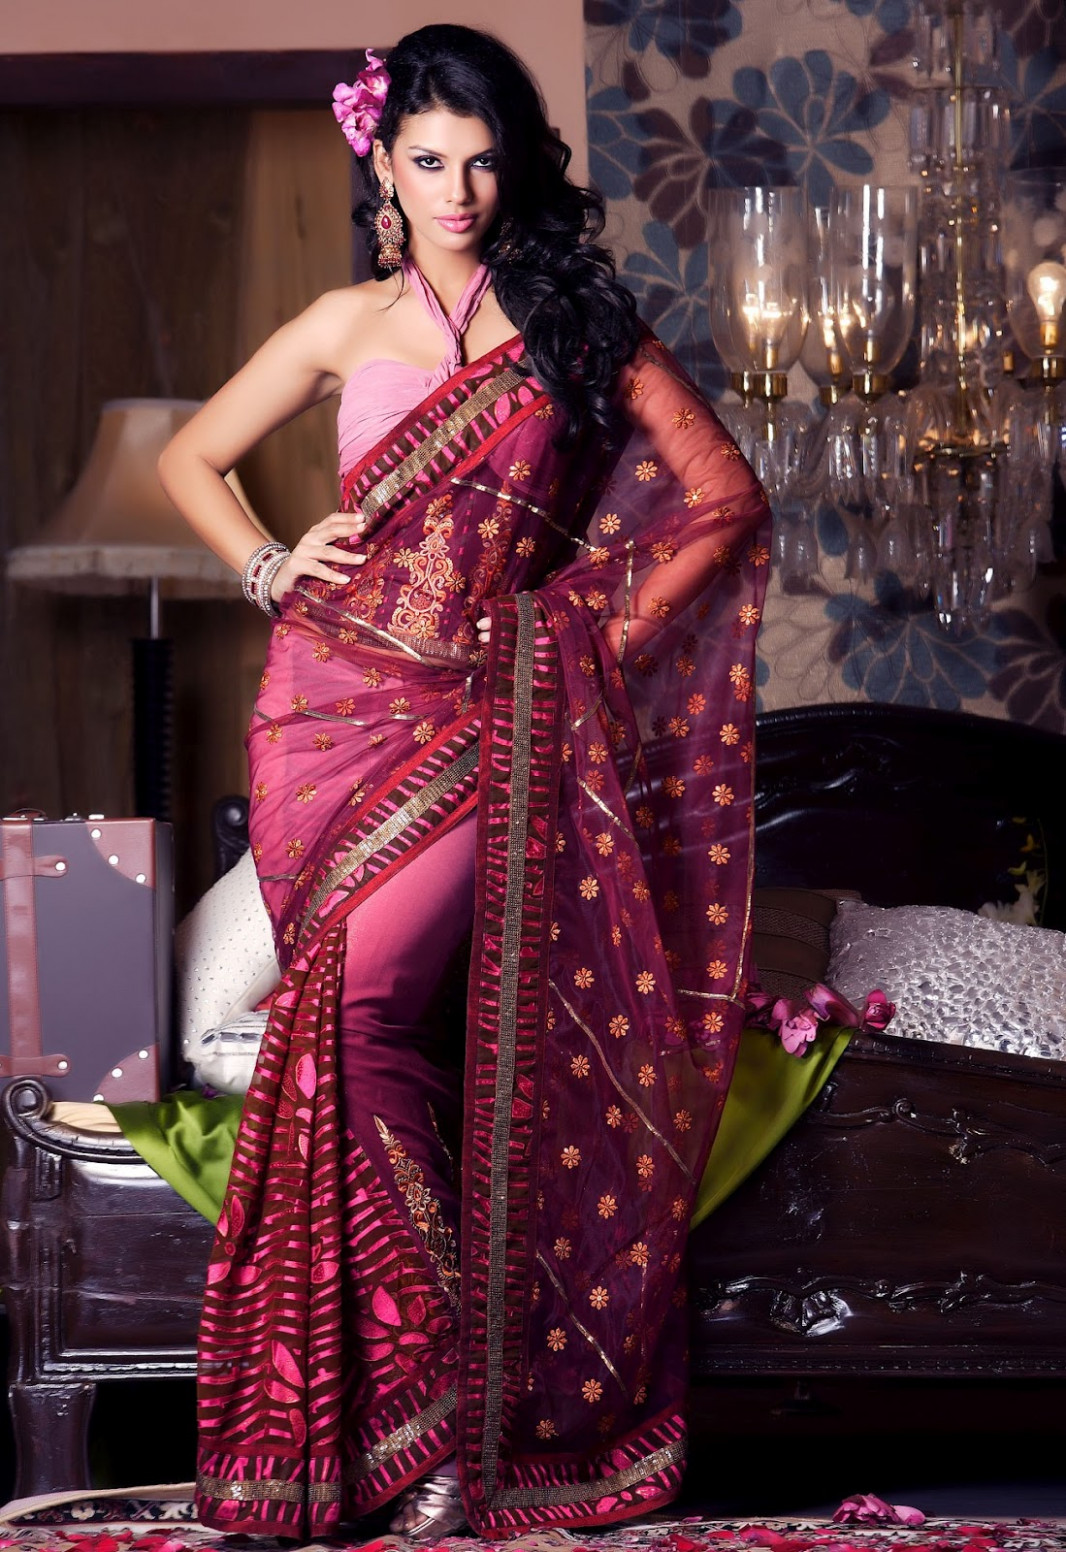 Hot model Stunning navel show in different sarees